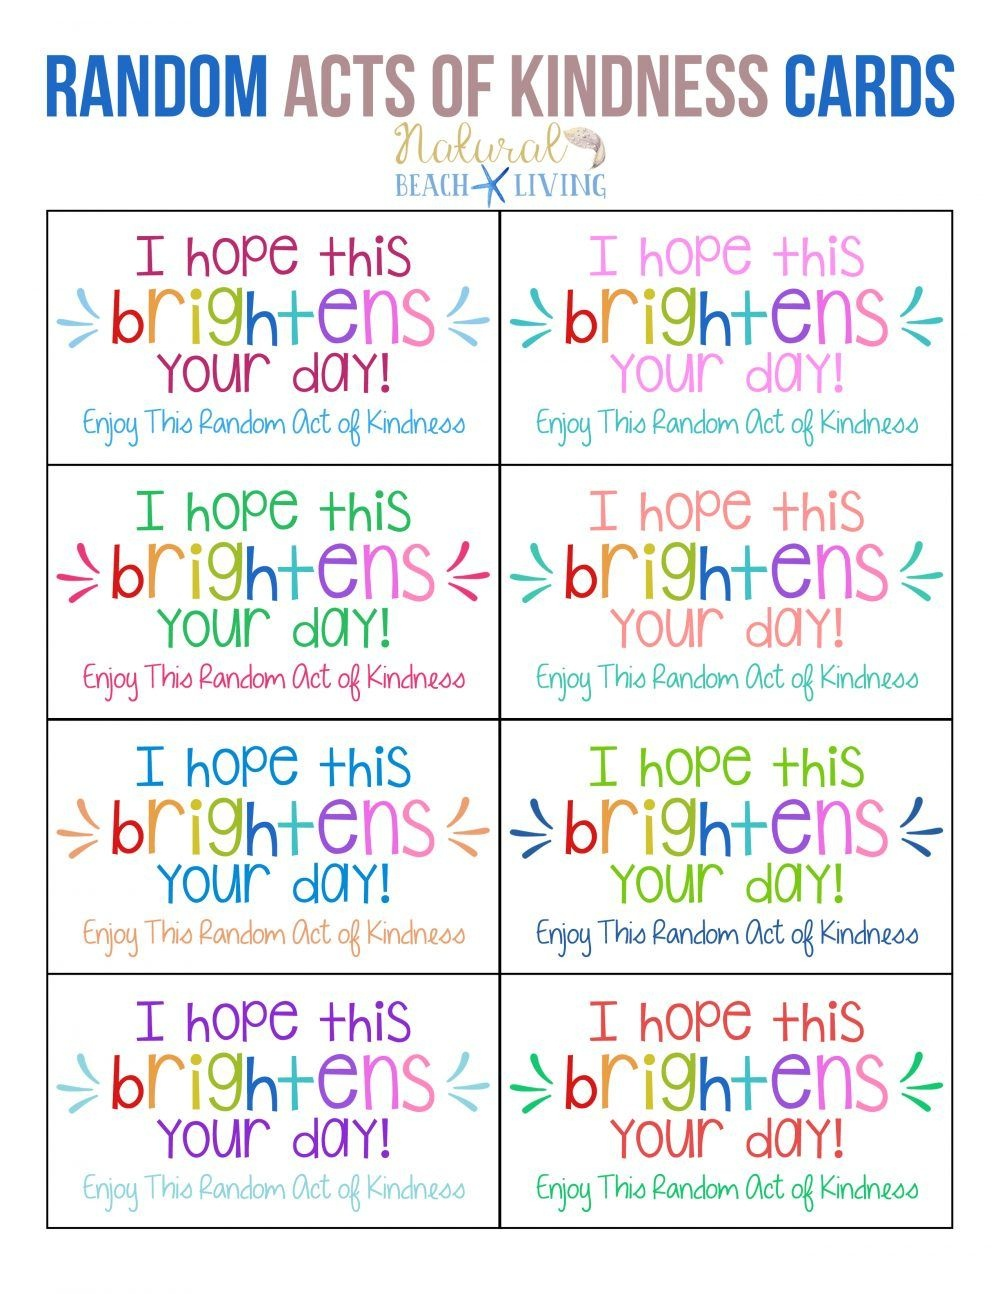 The Best Random Acts Of Kindness Printable Cards Free | Girl Scouts - Free Printable Kindness Cards